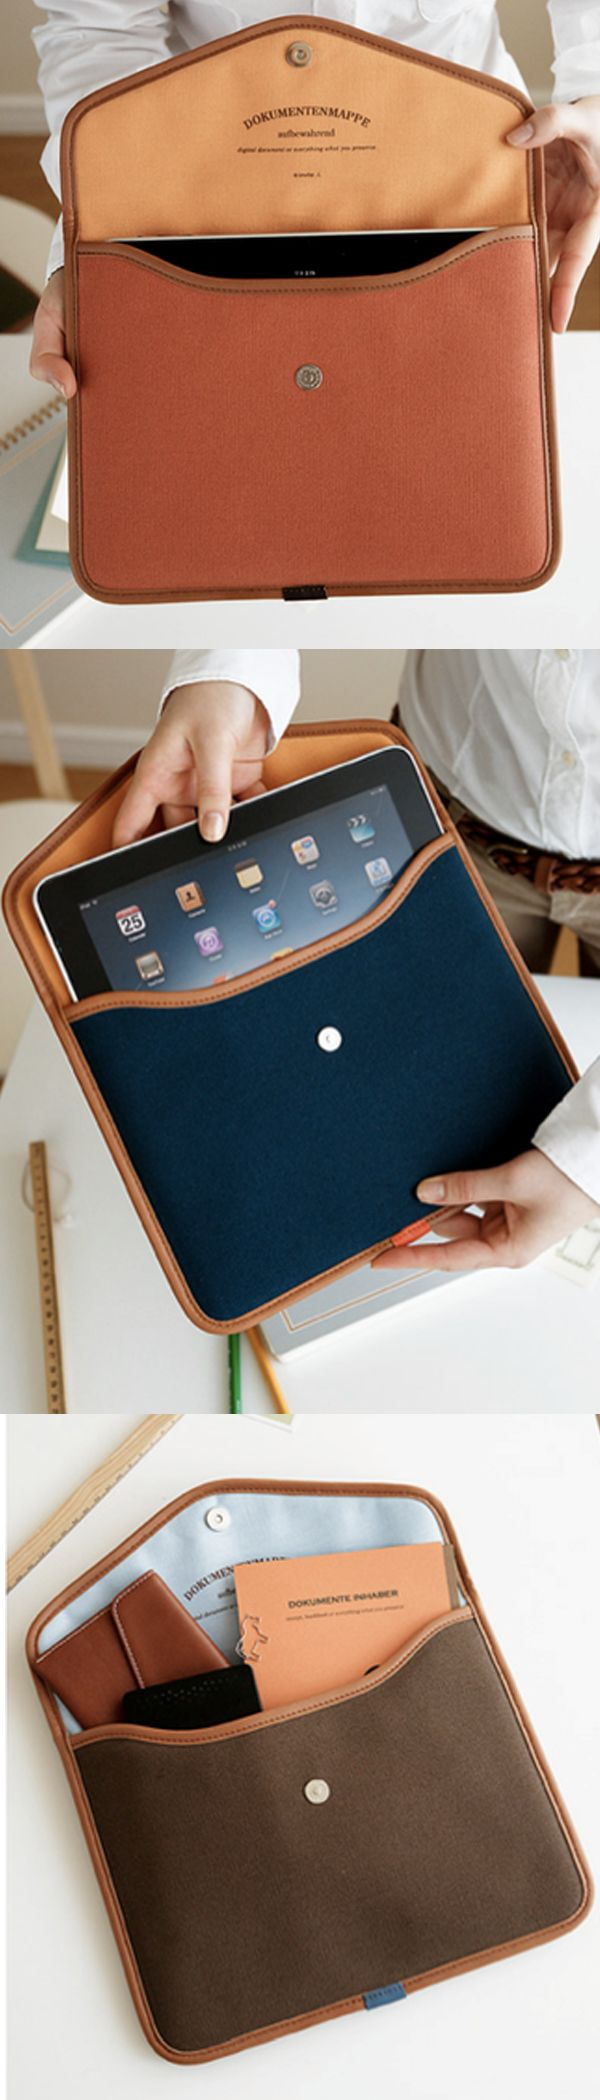 The iPad Pouch is a stylish and trendy bag for your iPad! Each bag has warm comforting colors, and will protect your iPad safely with the layers of protection! There is also a pocket in the rear to carry iPad related items for your convenience!